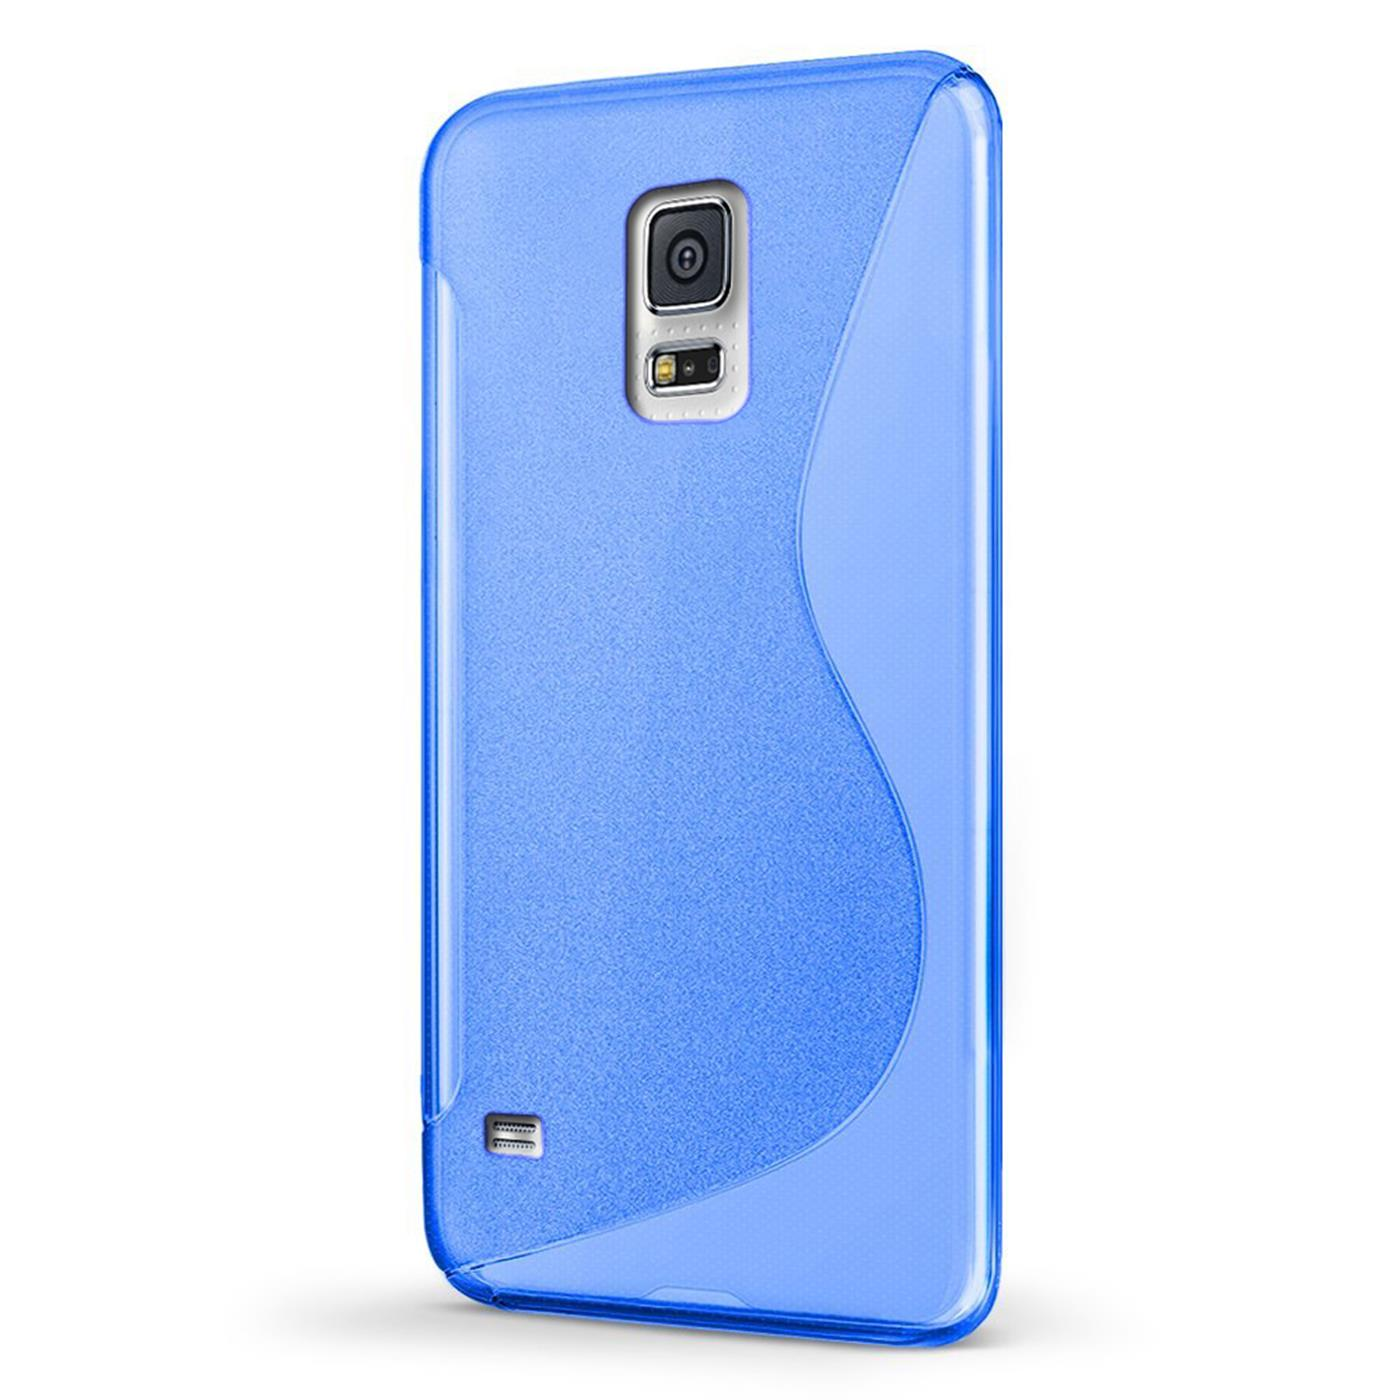 Samsung-Galaxy-s5-Neo-Silikon-Gel-S-Line-Case-Cover-Ultra-Thin-Slim-Back-Bumper Indexbild 8